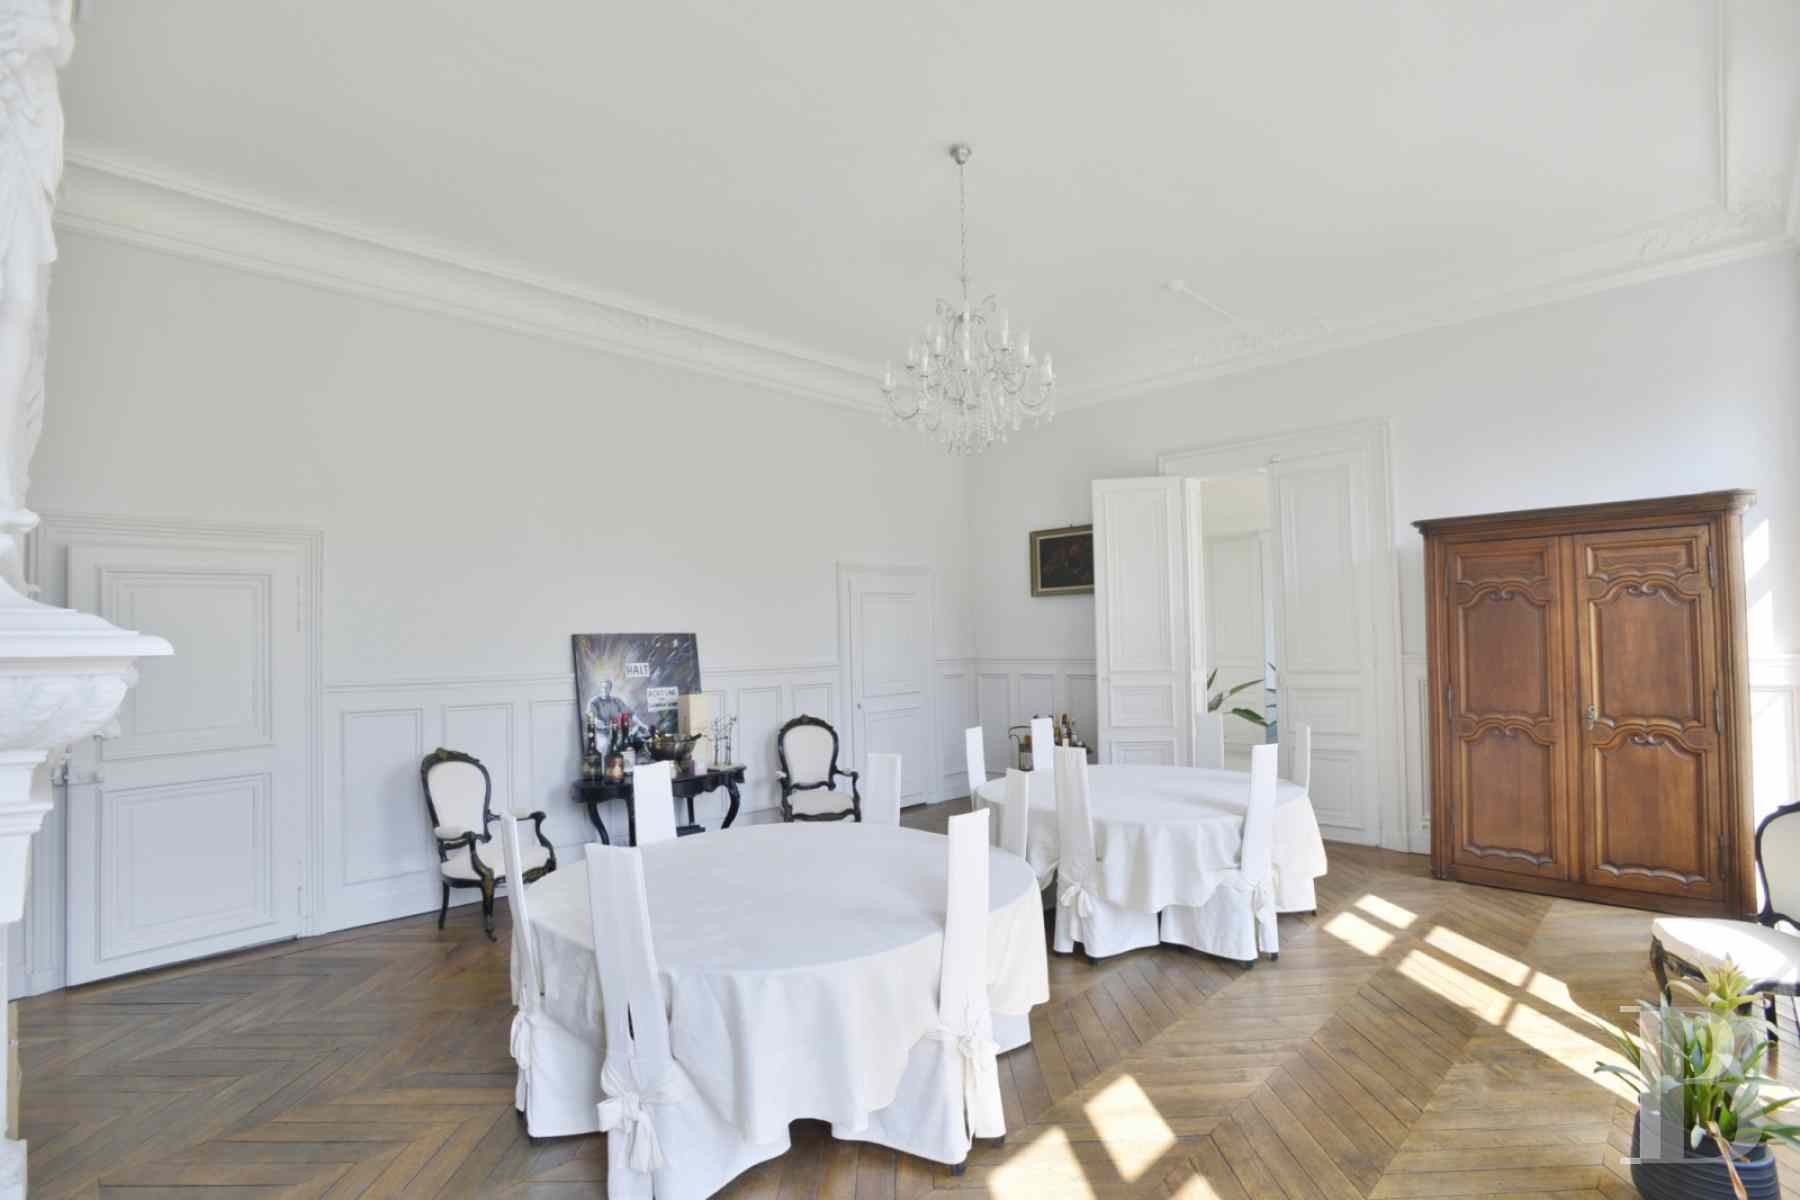 chateaux a vendre picardie 19eme siecle - 7 zoom